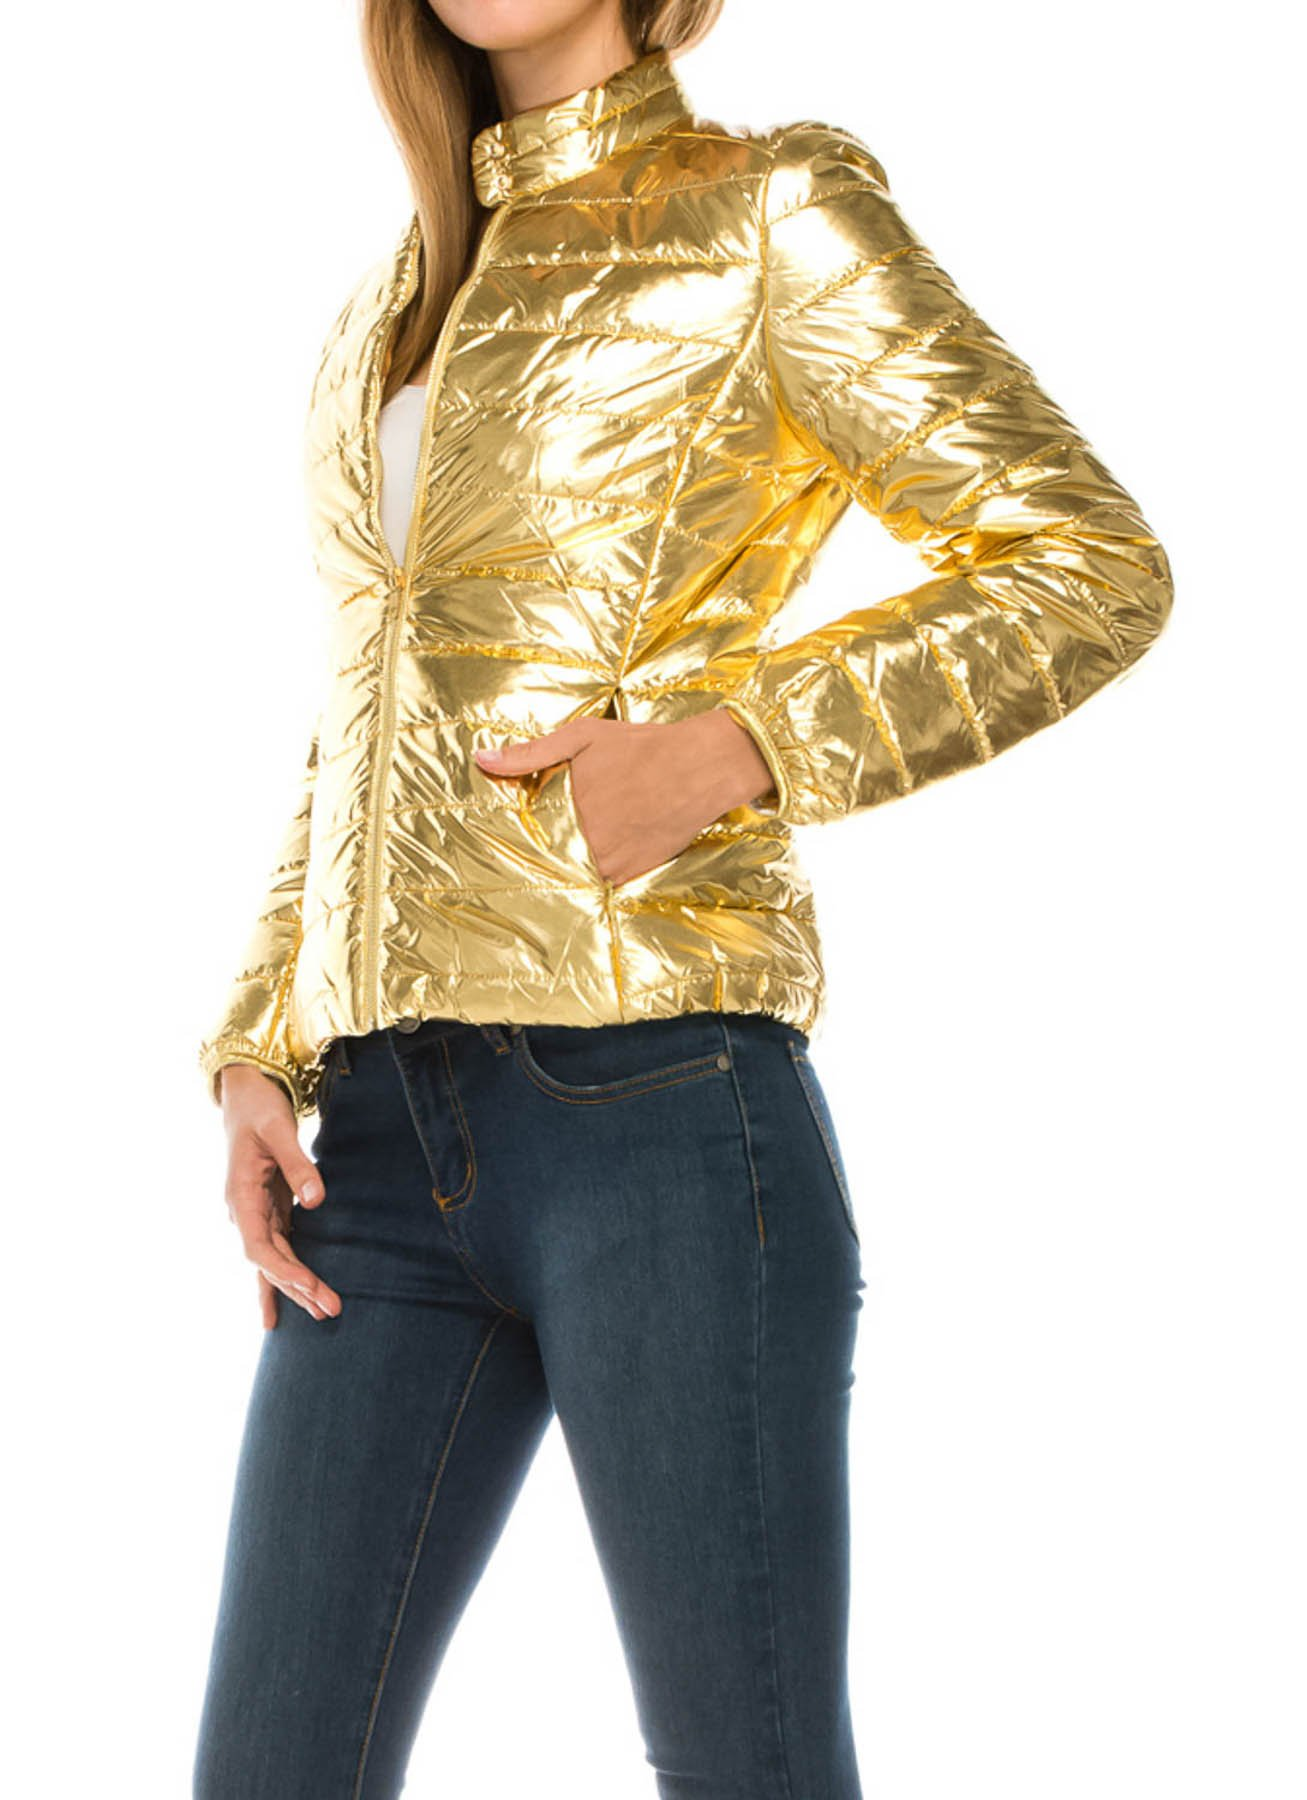 JEZEEL Women's Lightweight Solid Quilted Metallic Jacket(J201,XL,Gold)